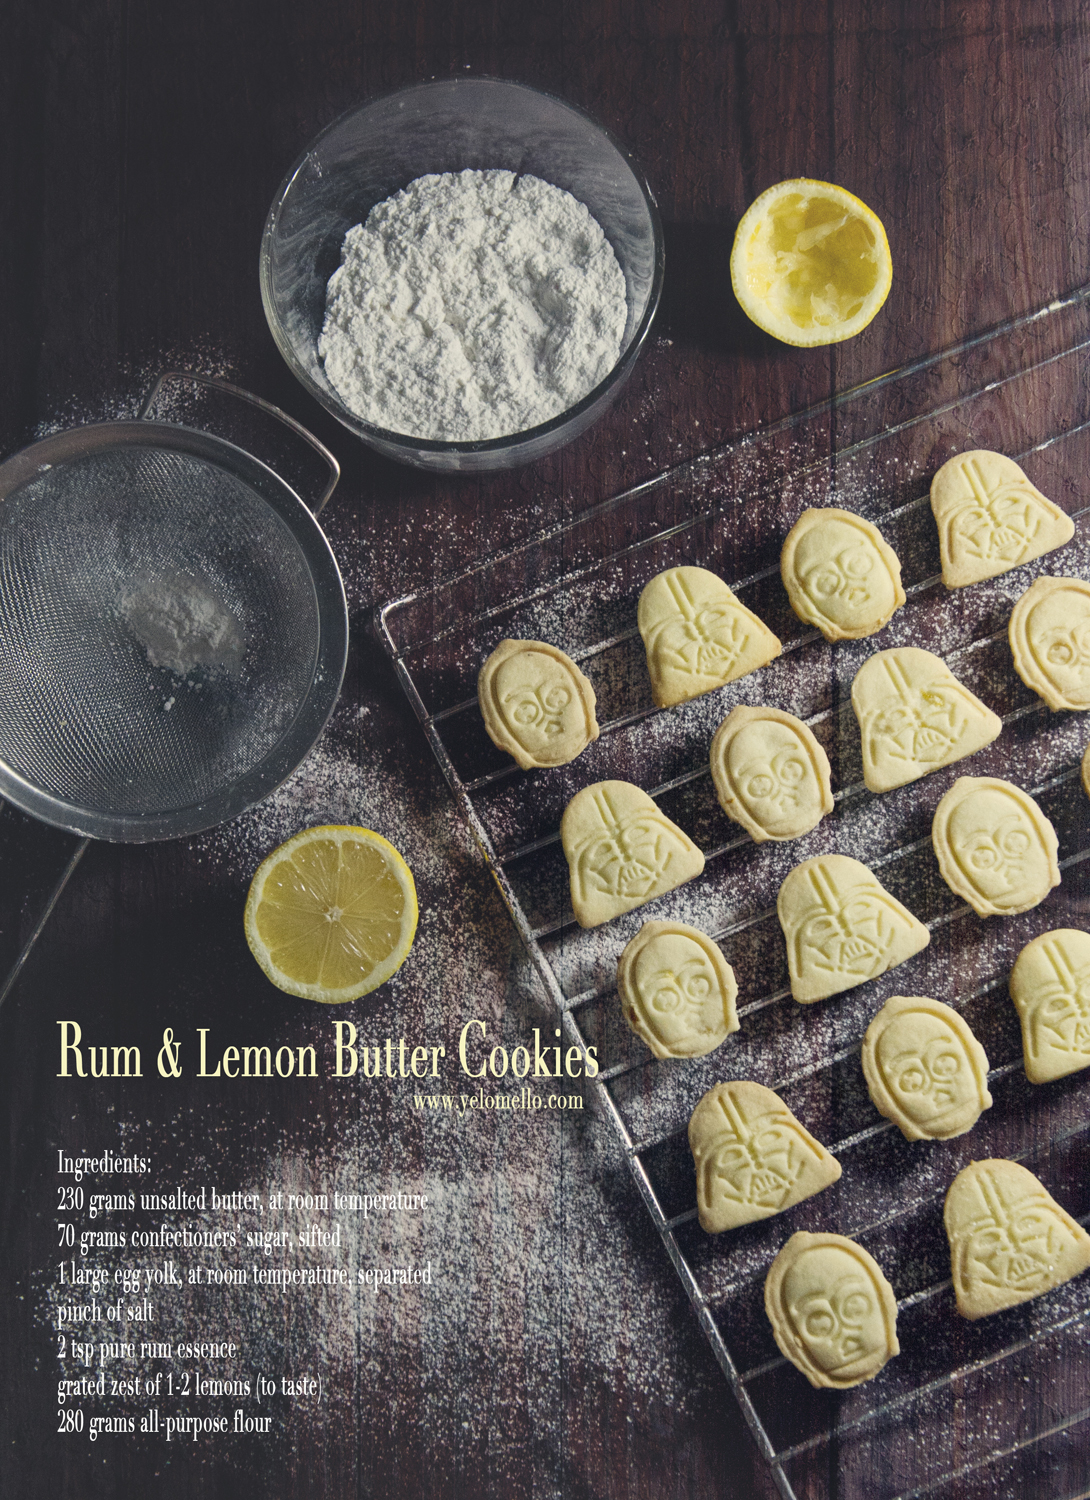 Rum & Lemon Butter Cookies Teaser B